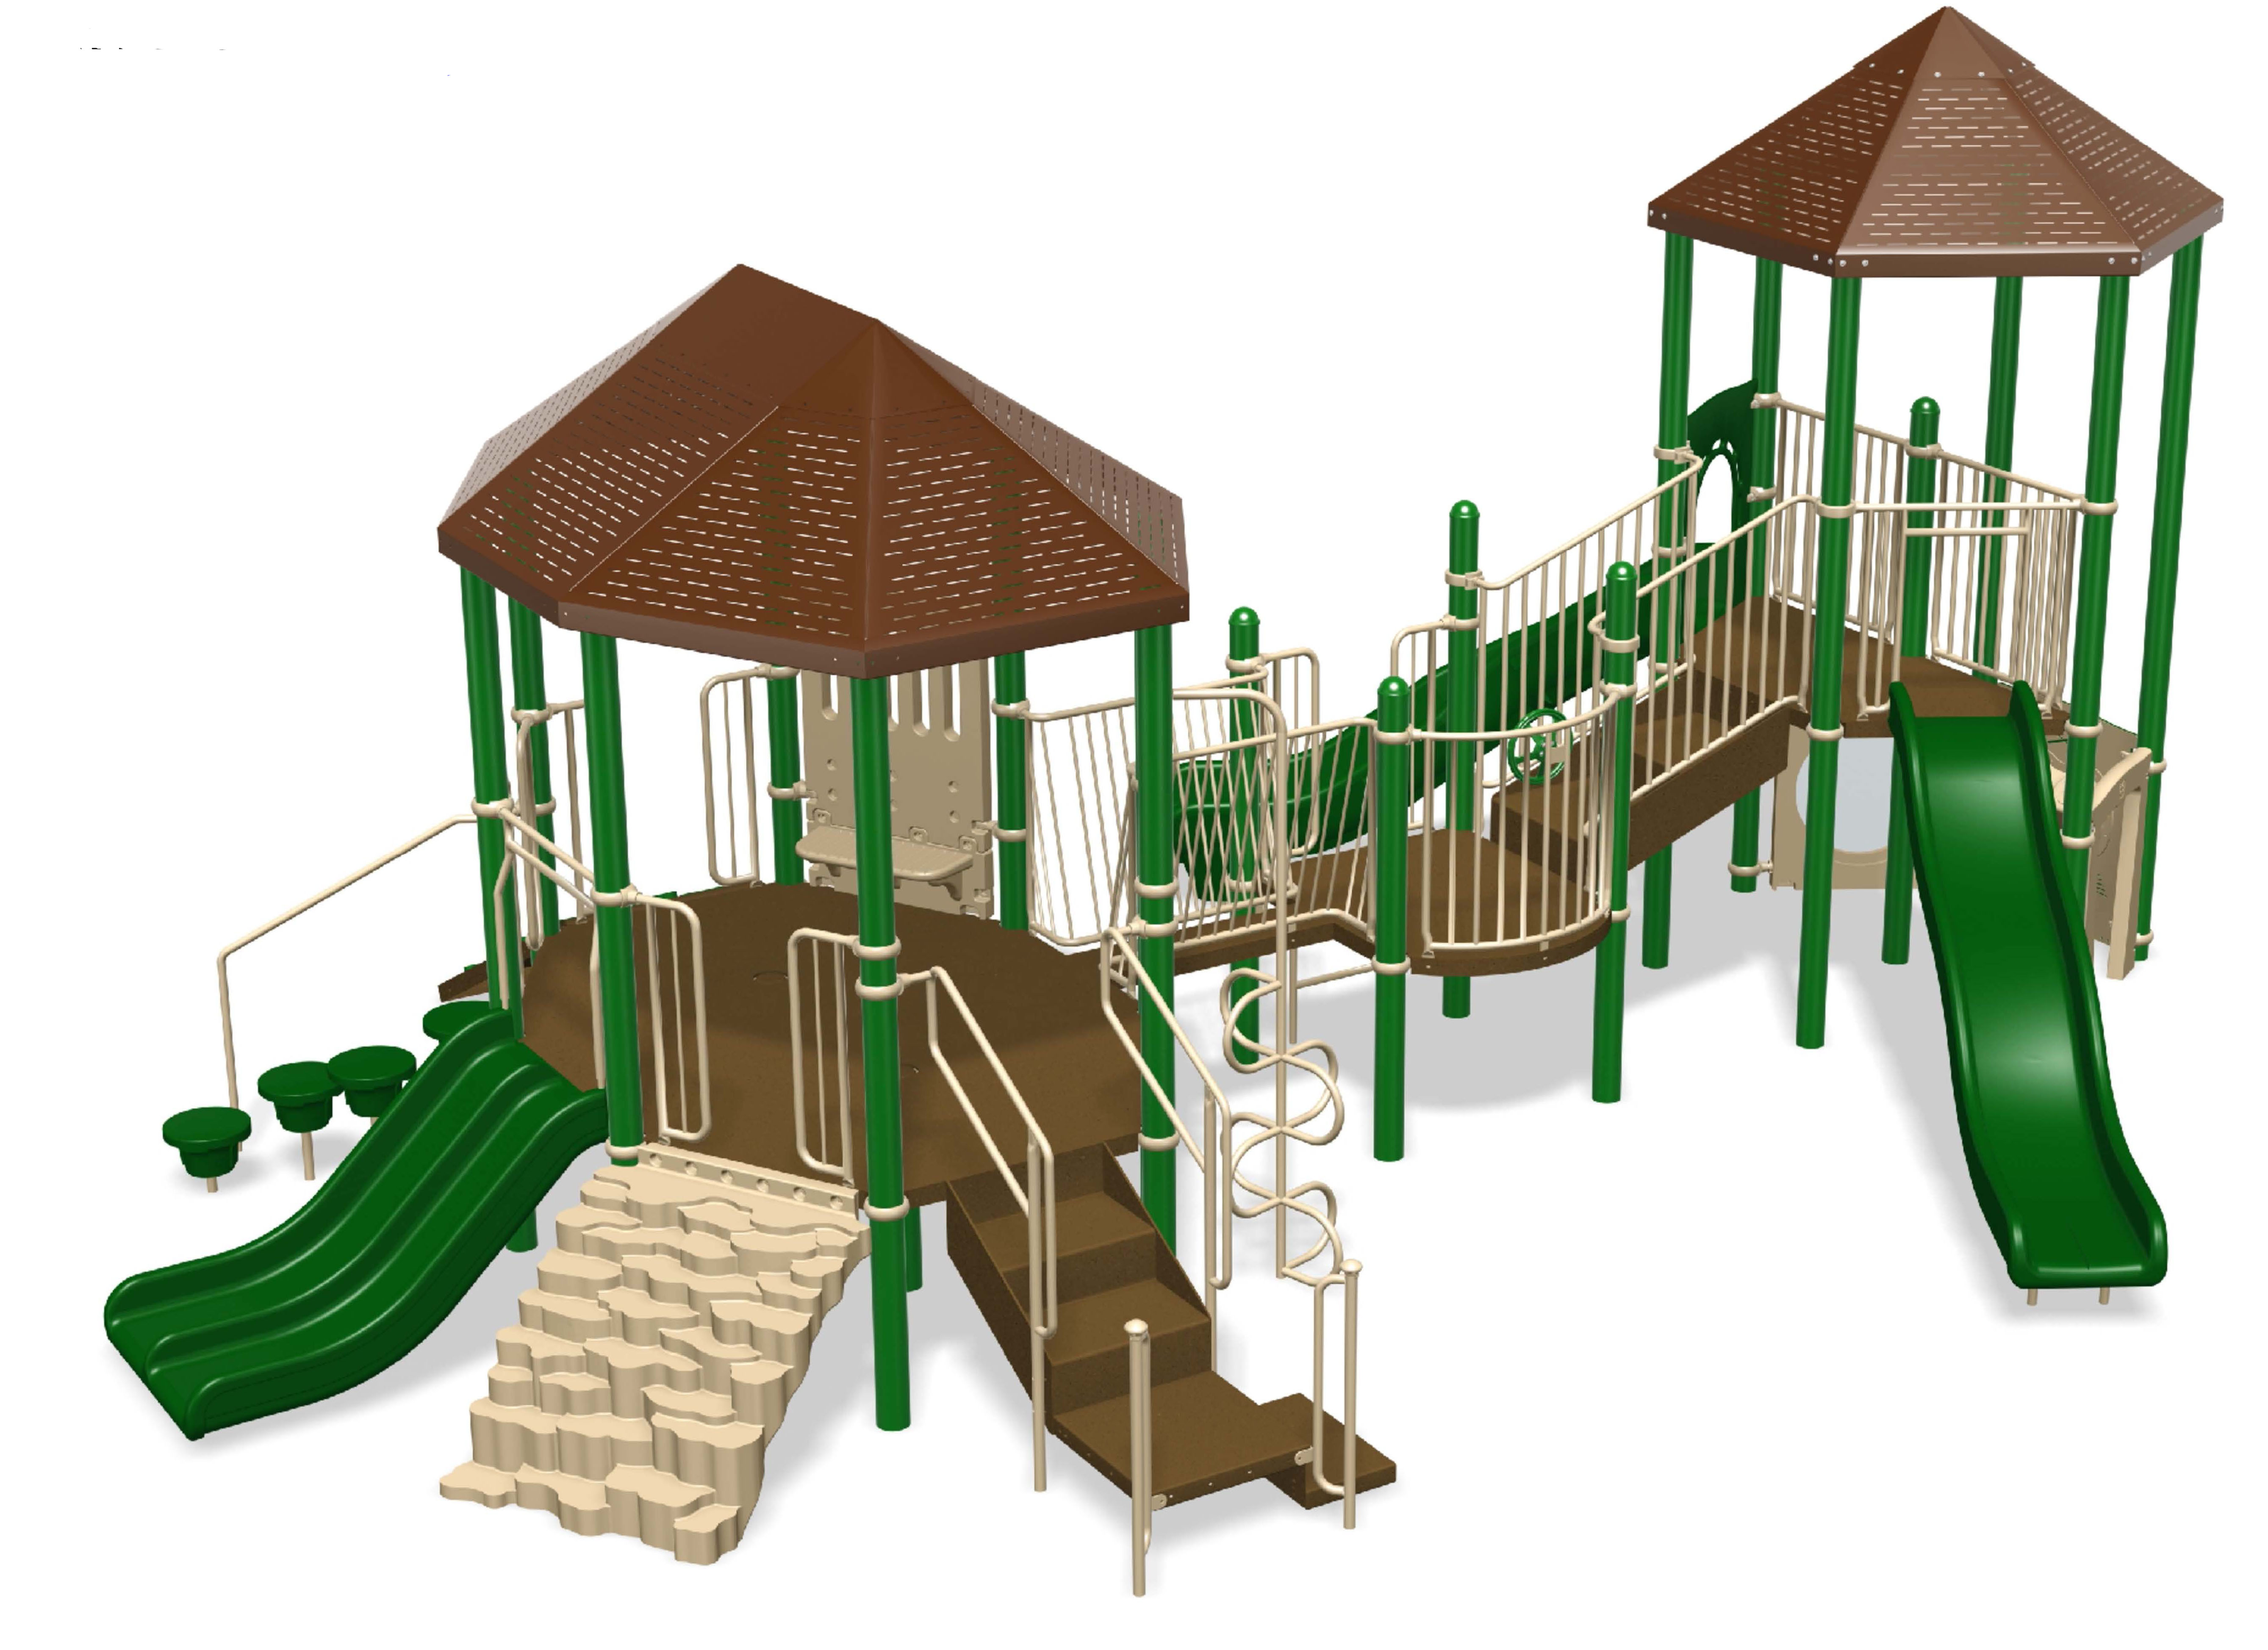 School playground equipment pacific play systems - School Playground Equipment Renovation Project Awarded For